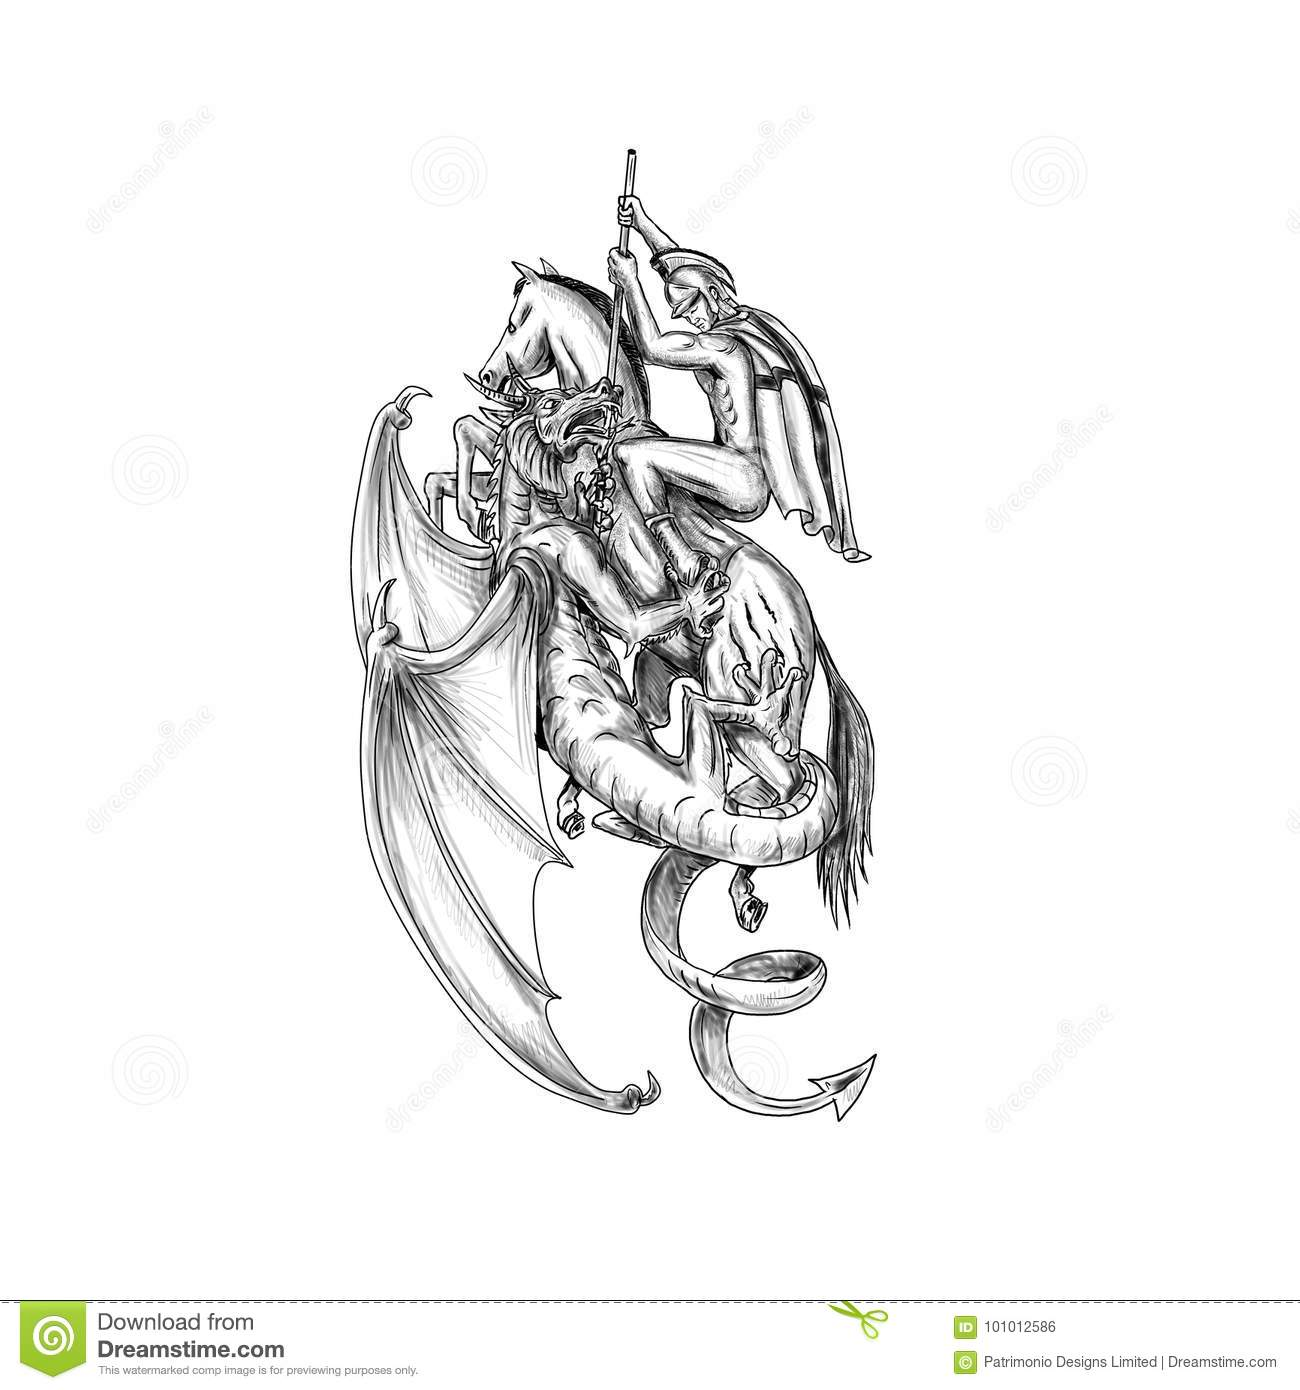 st george slaying dragon tattoo stock illustration image 101012586. Black Bedroom Furniture Sets. Home Design Ideas